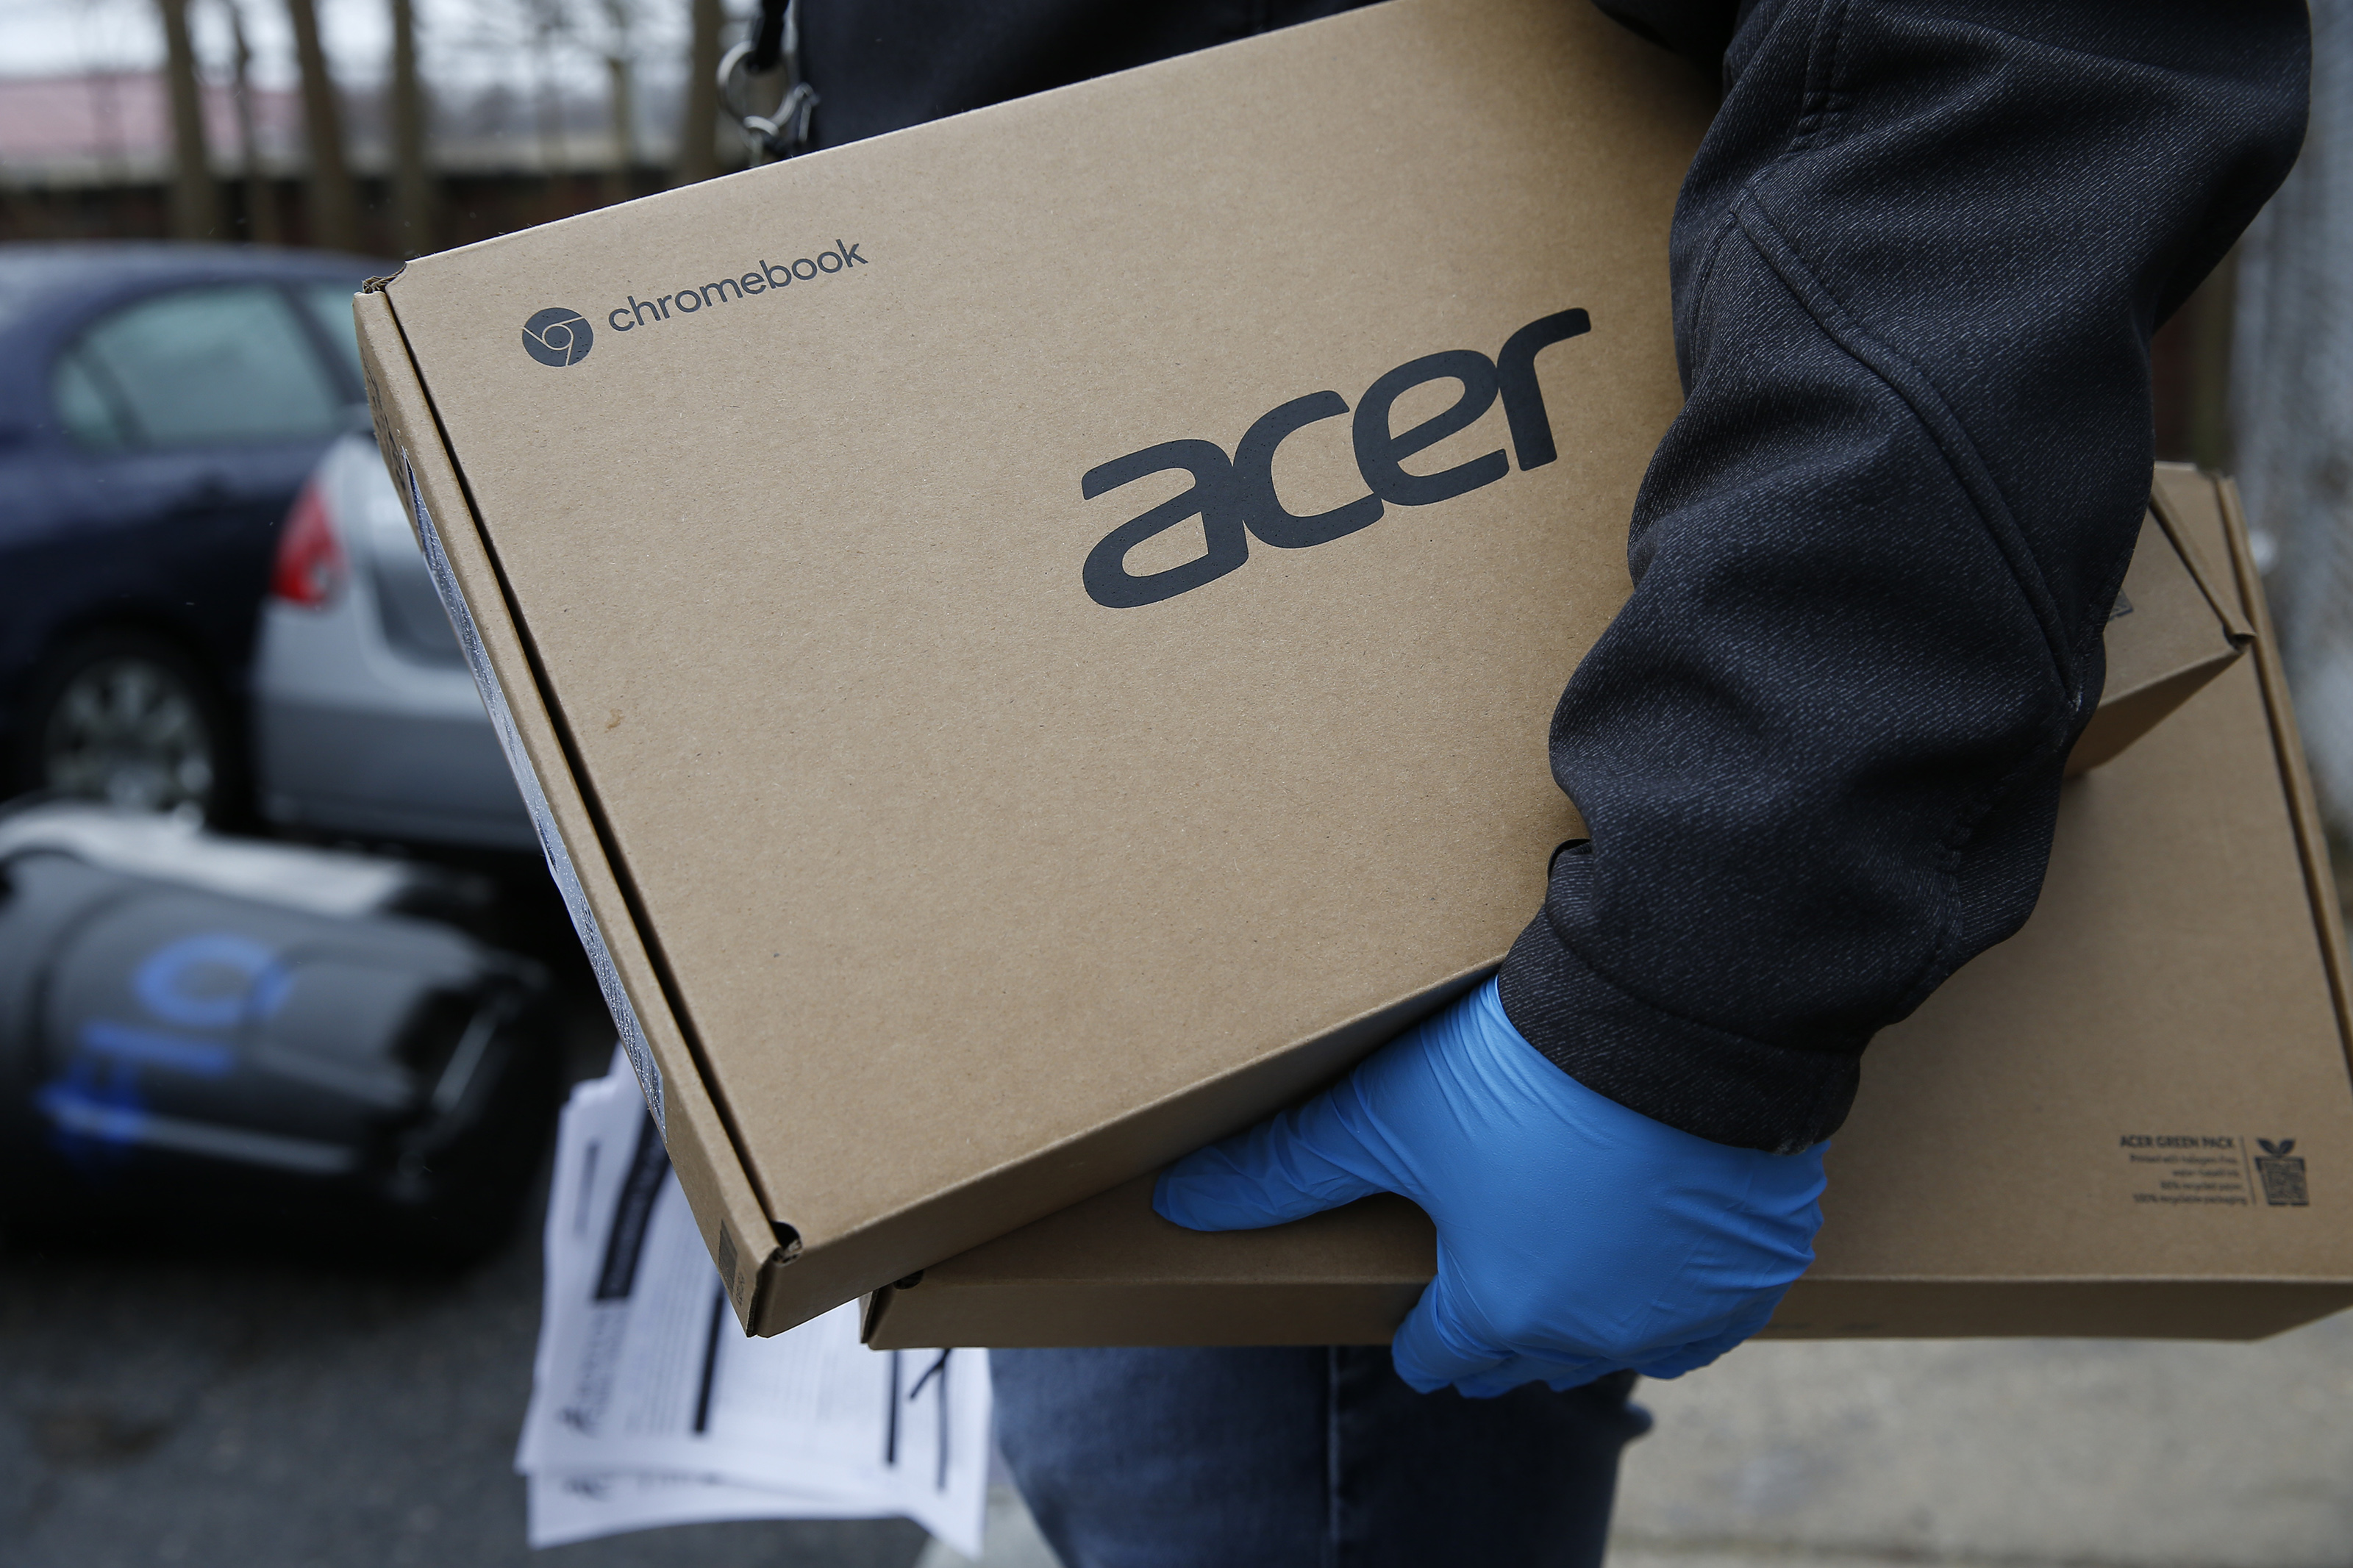 Acer reportedly hit by $50 million ransomware attack   Engadget